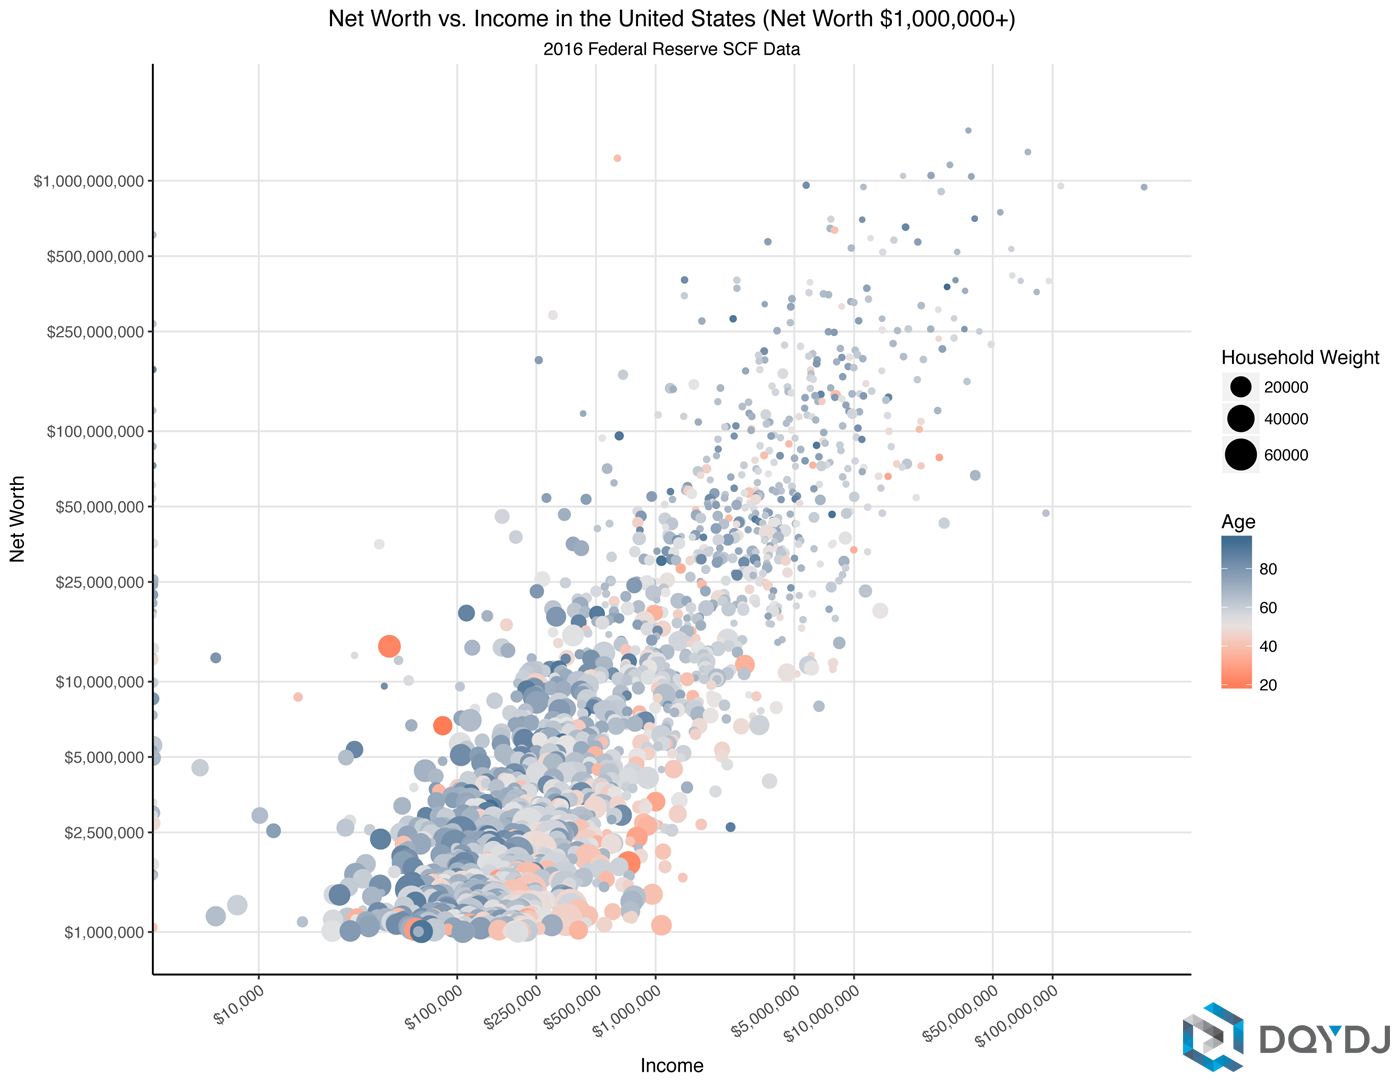 Correlation of Income and Net Worth for the Upper Middle Class measured by net worth over $1,000,000